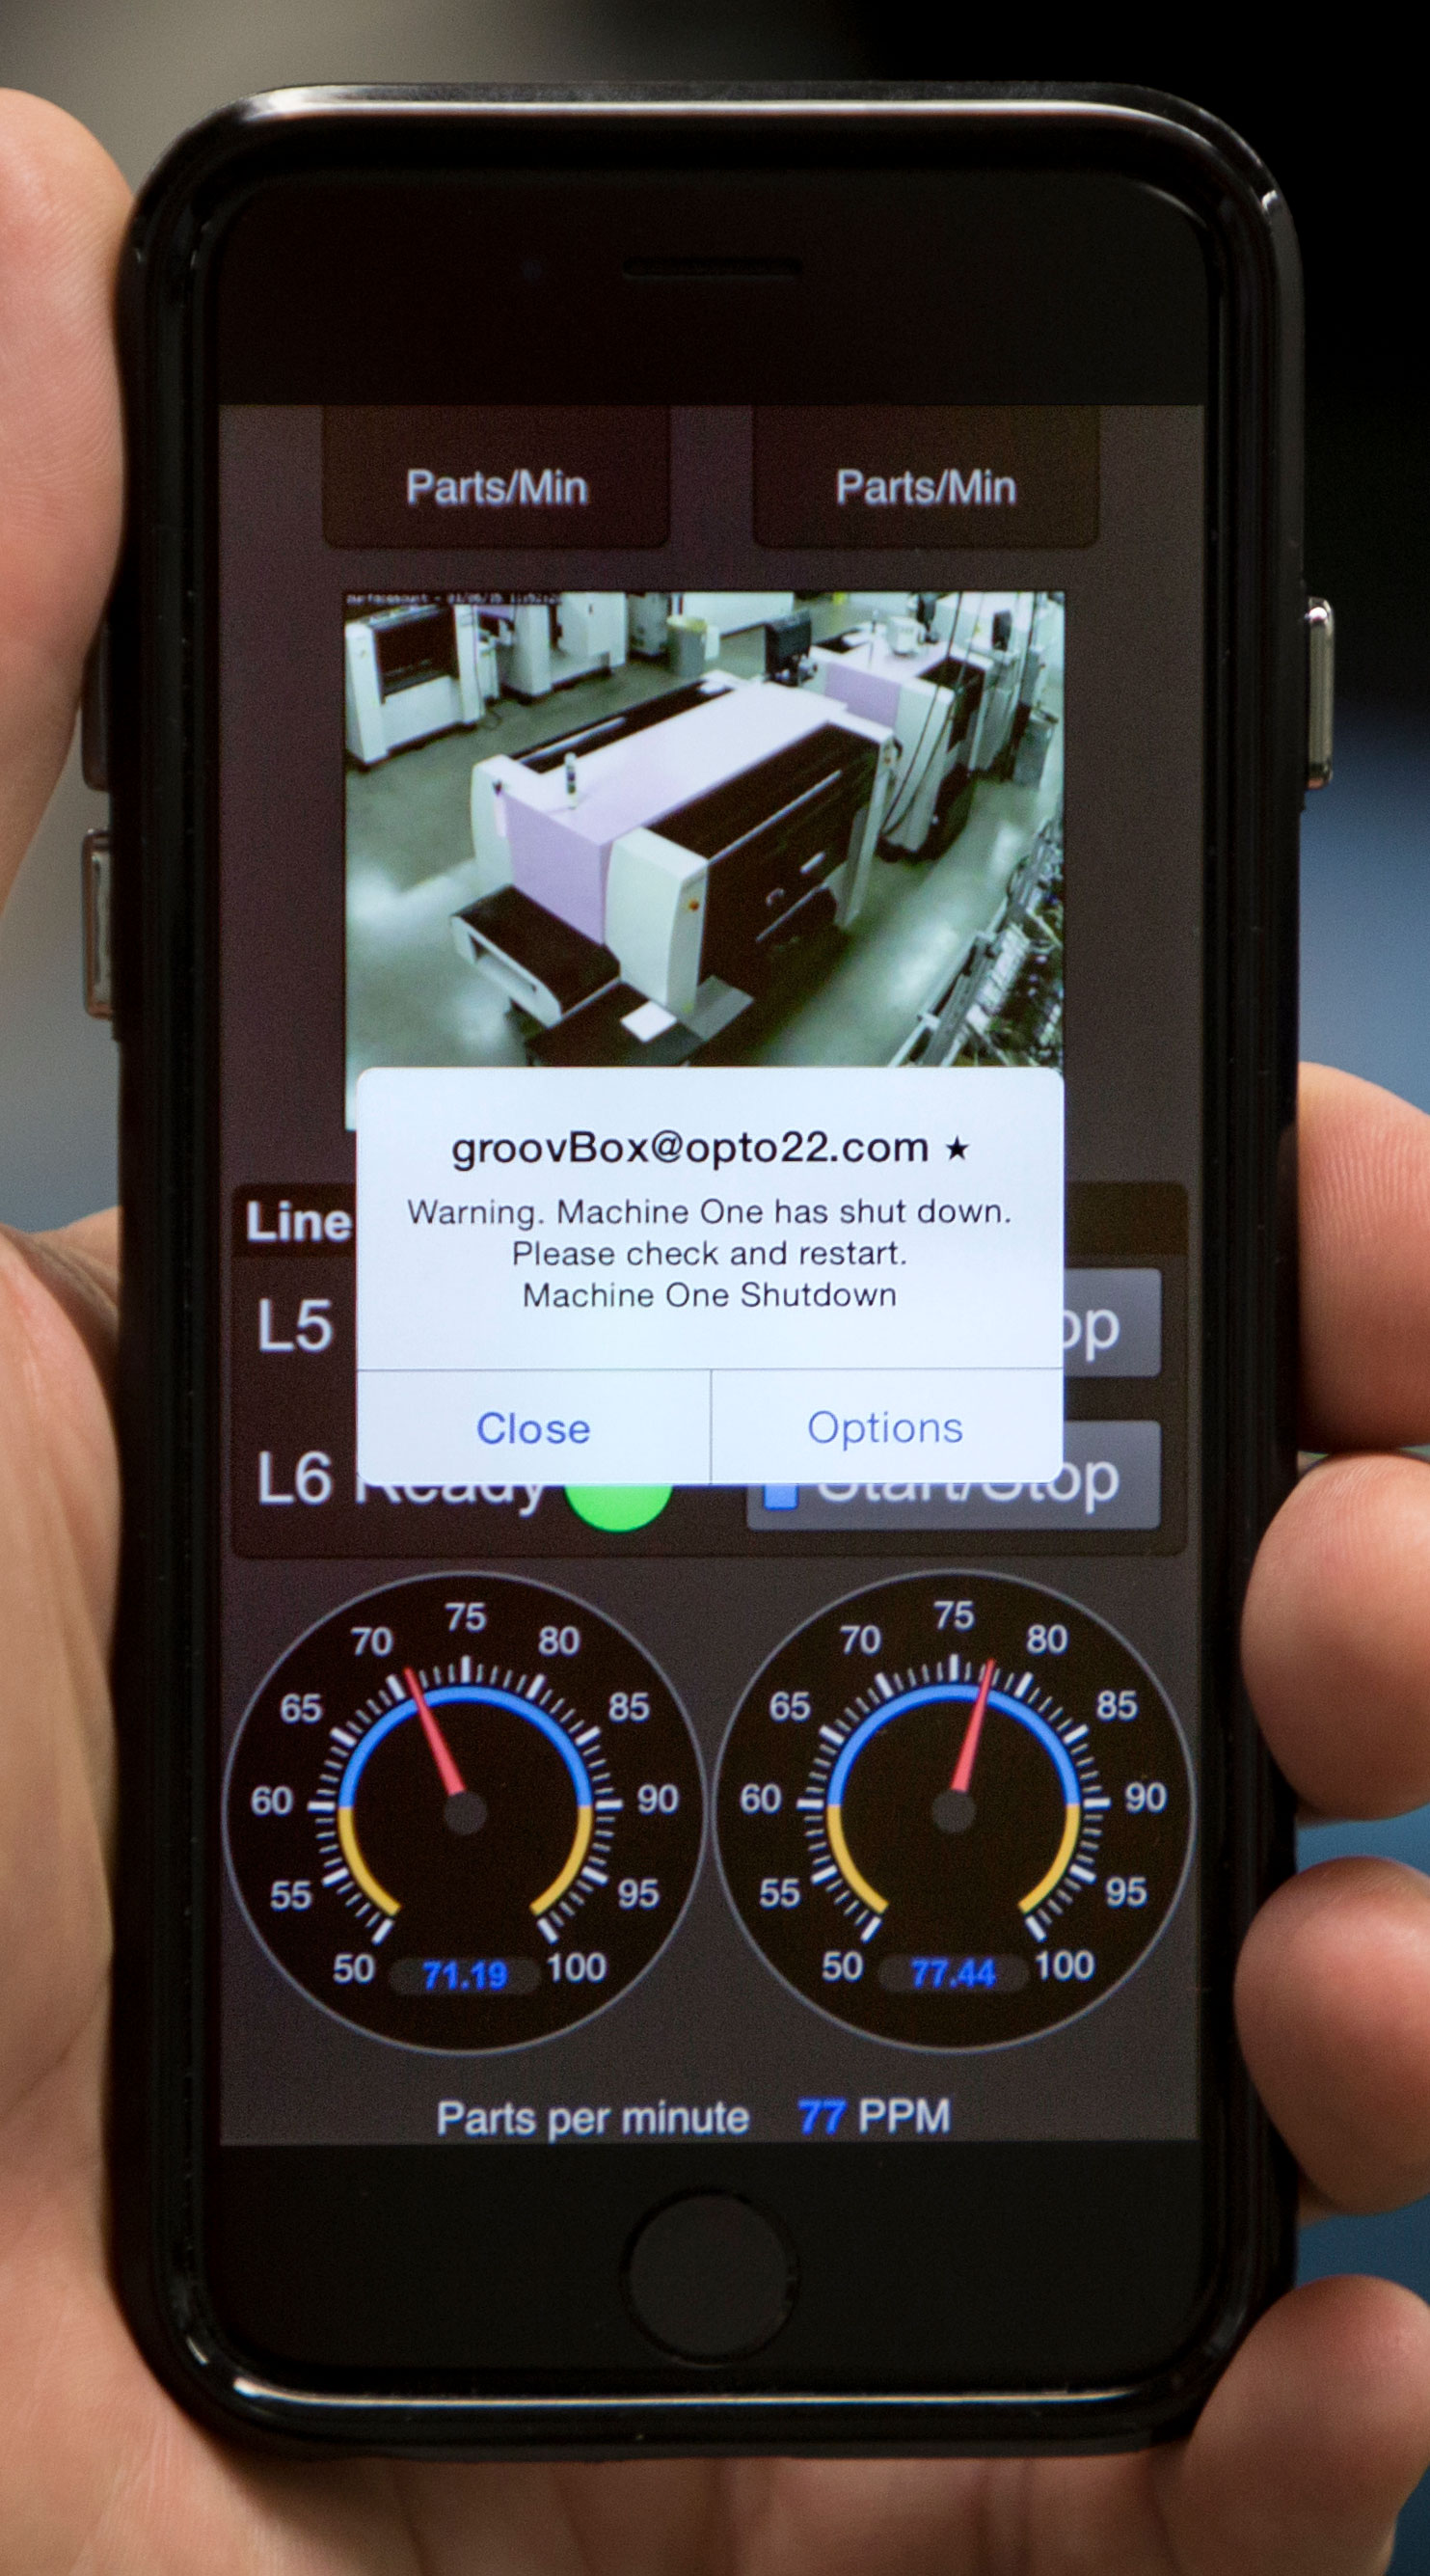 A groov mobile operator interface sending alerts